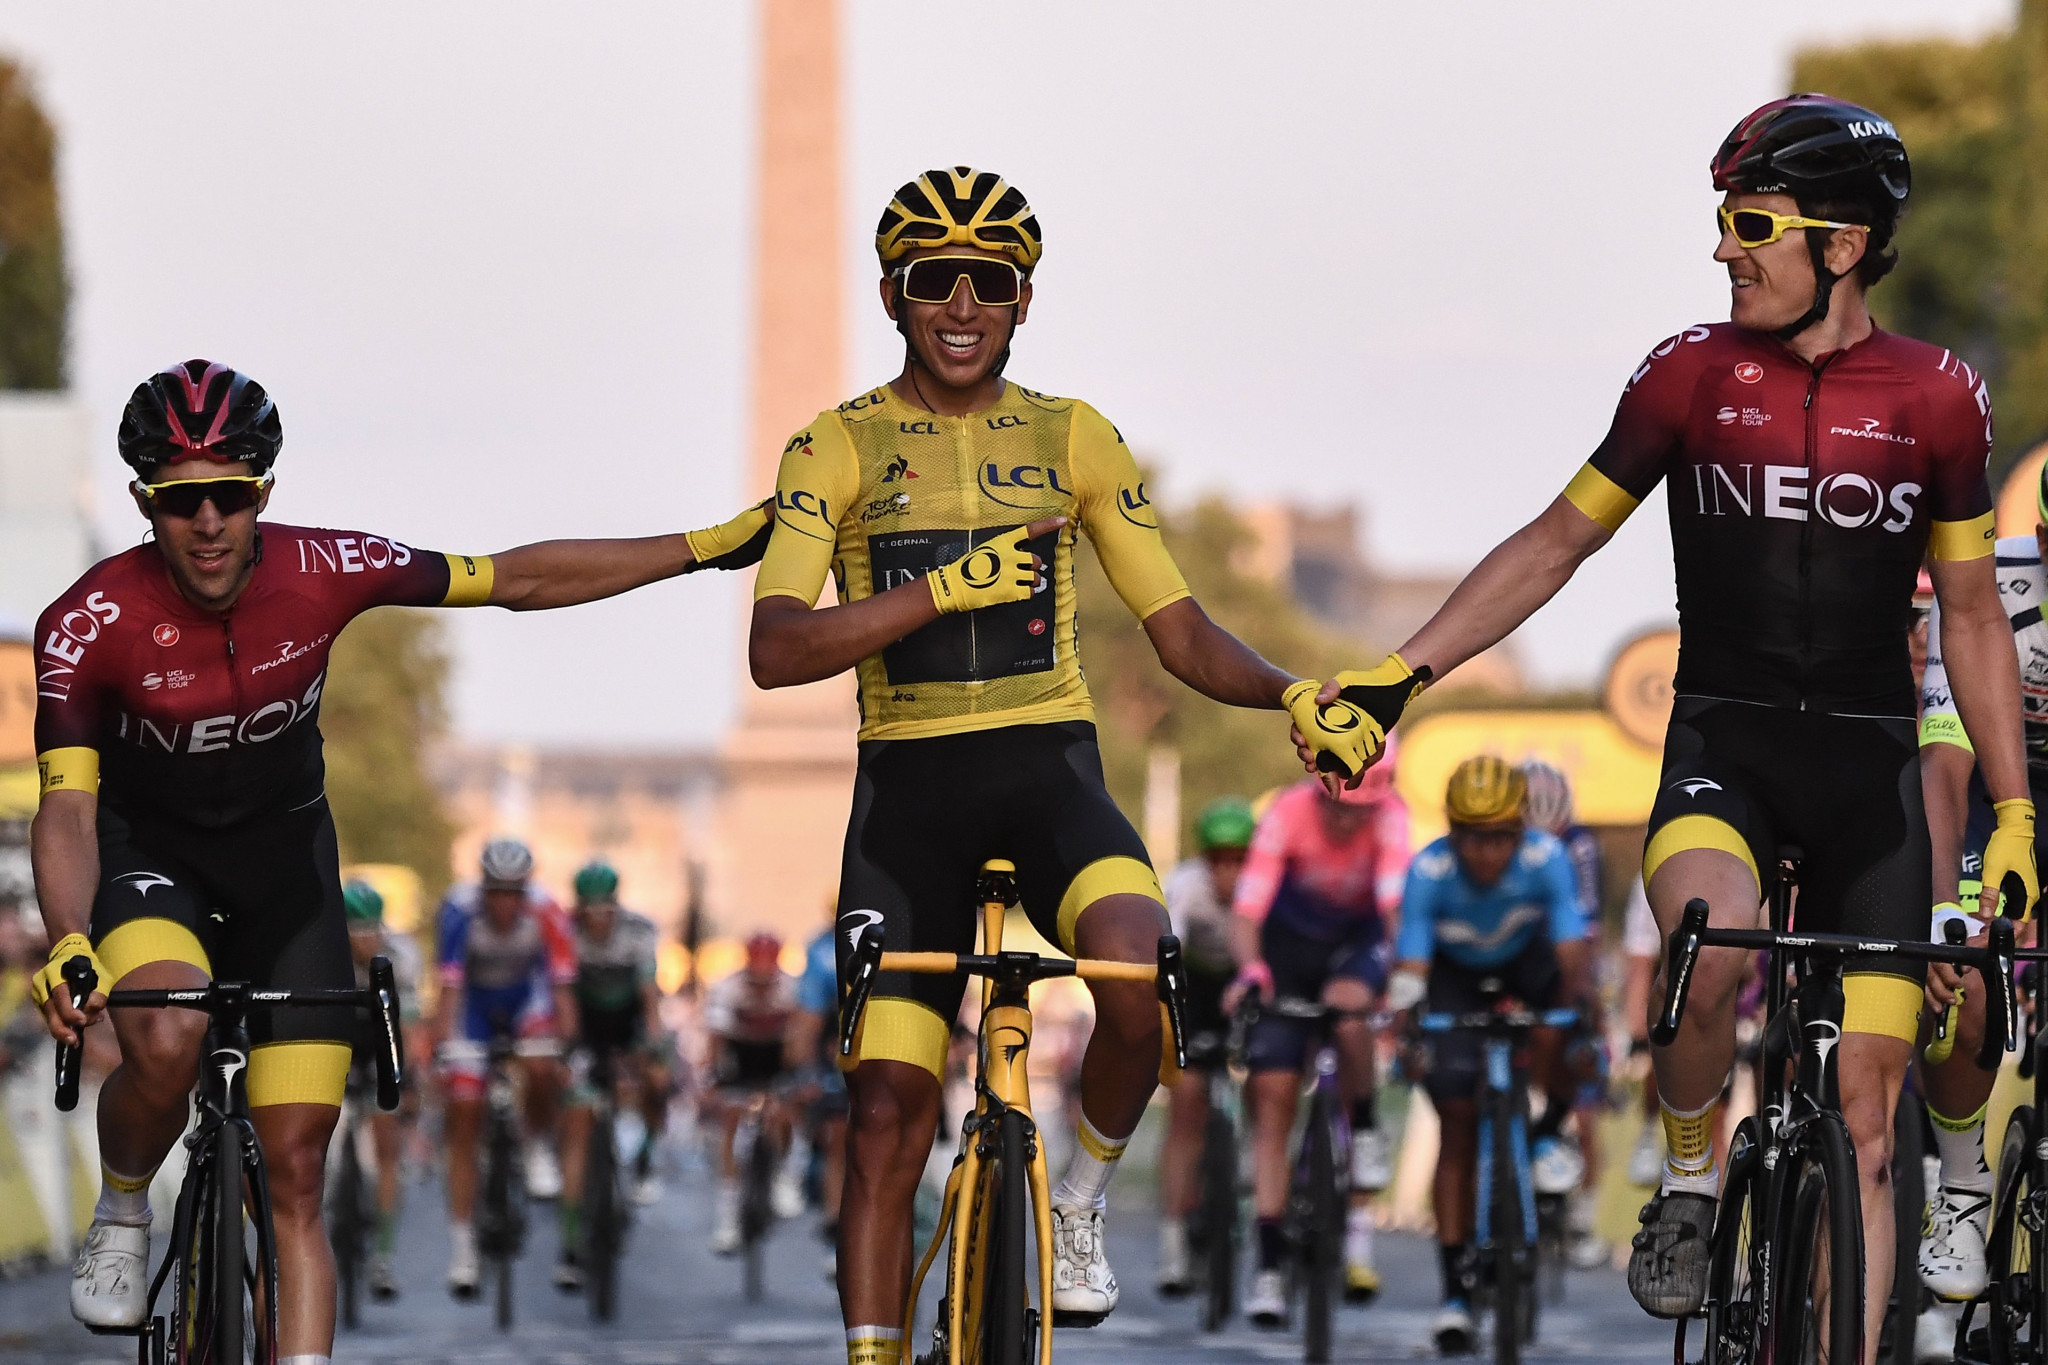 Bernal crowned first Colombian winner of Tour de France after final stage in Paris